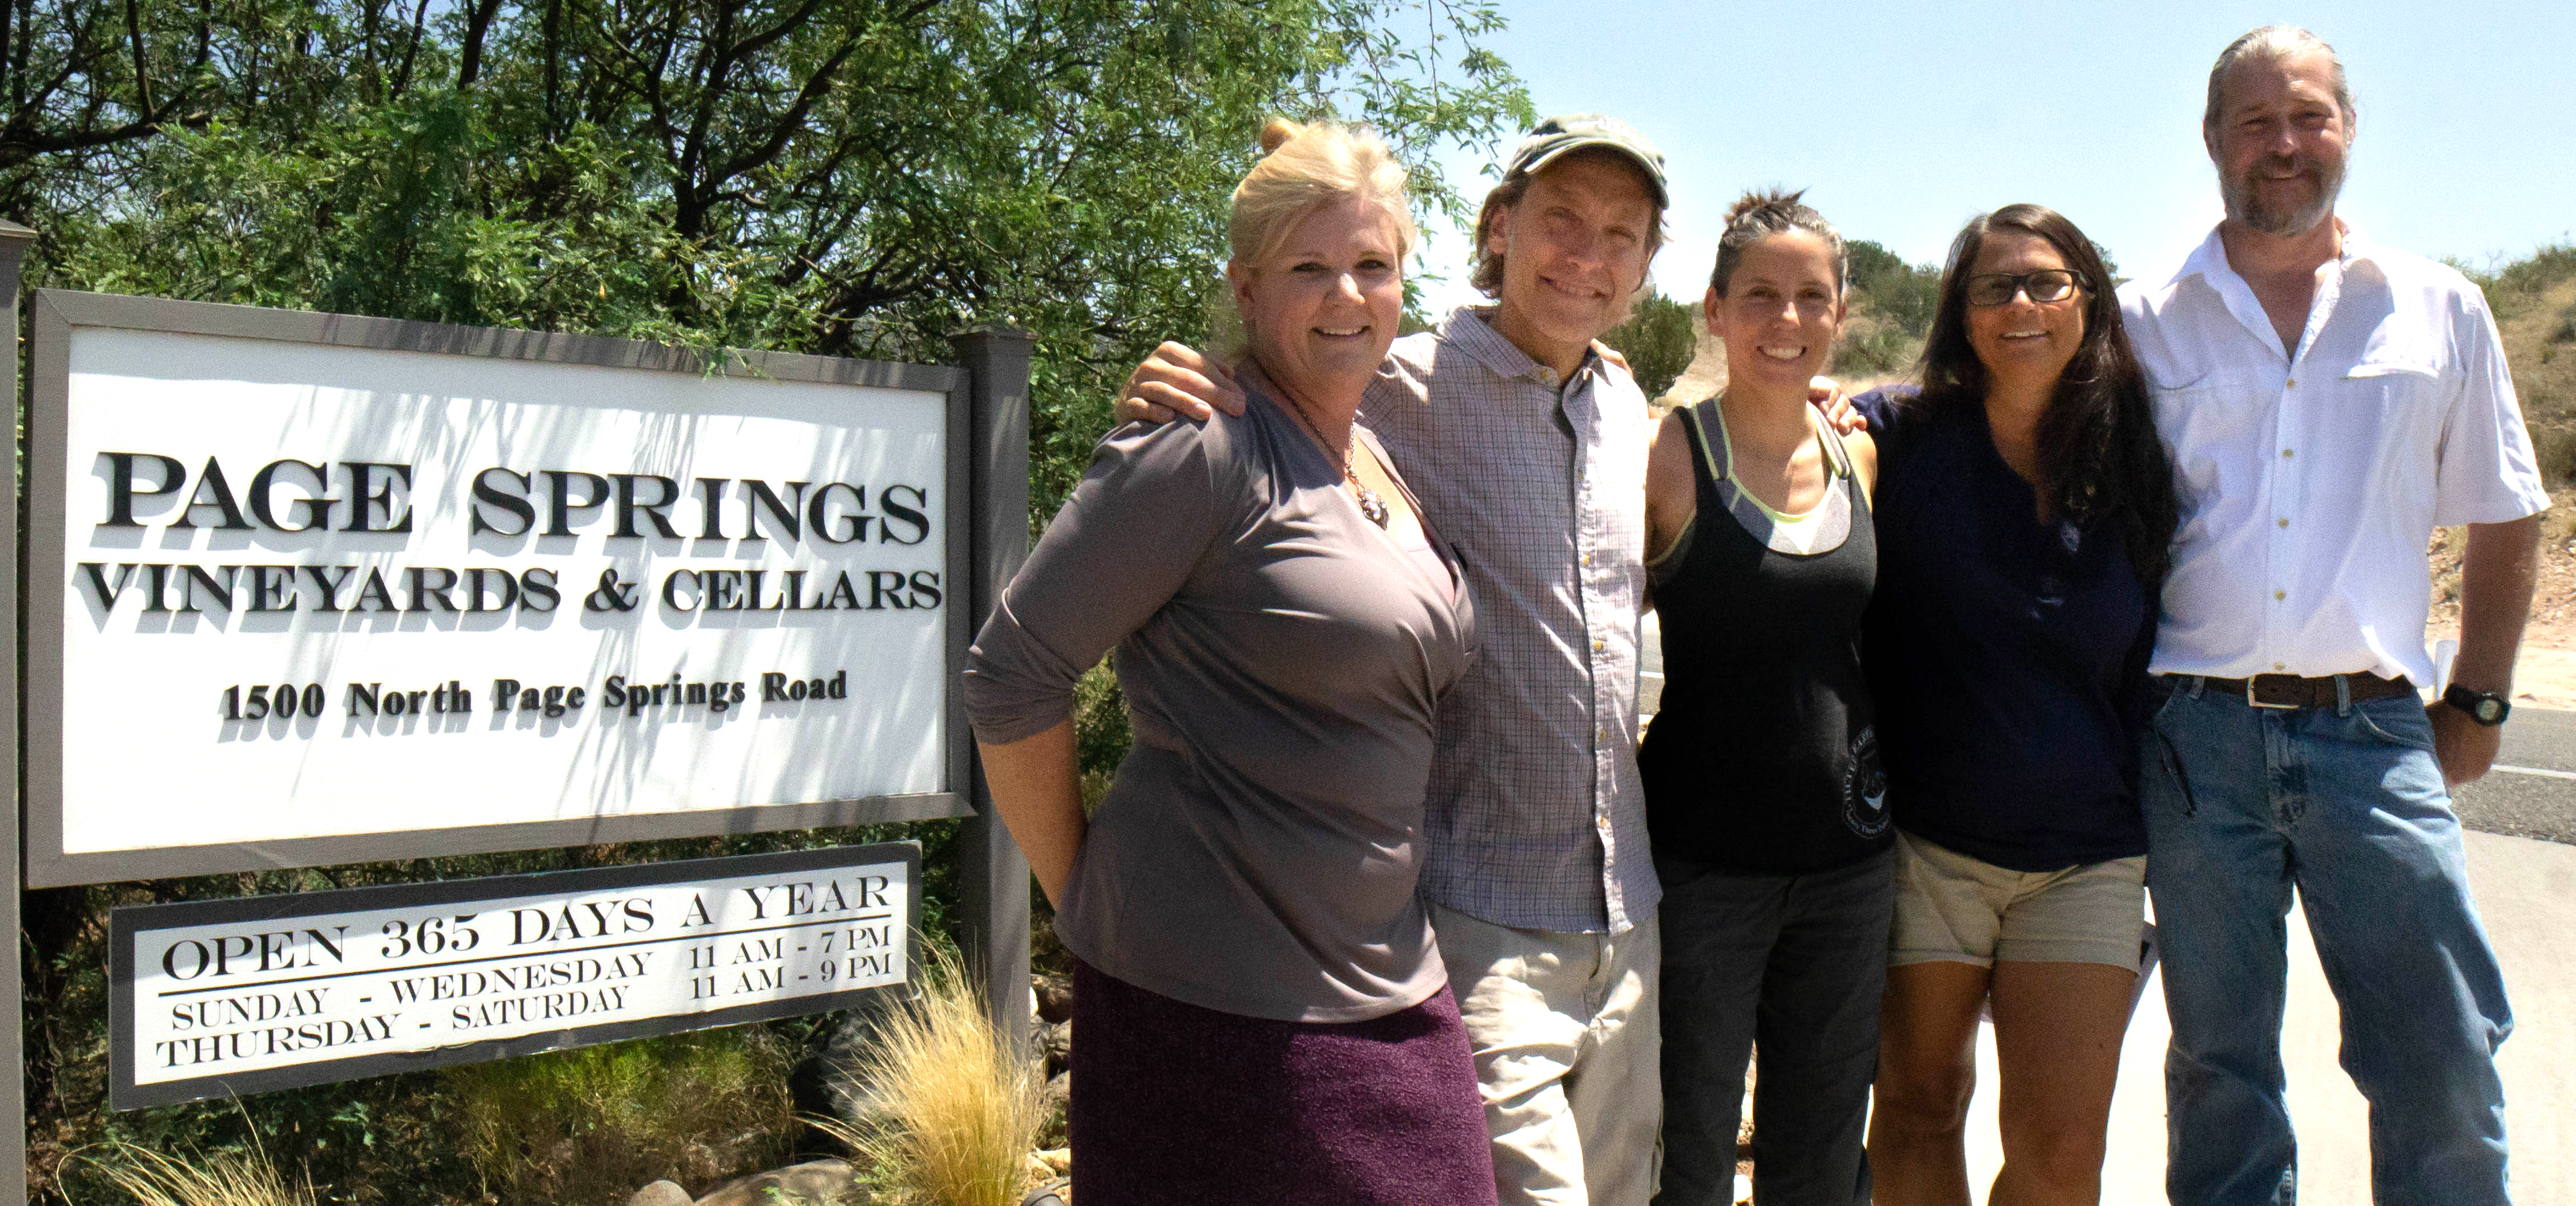 County P&Z to consider Page Springs Cellars expansion